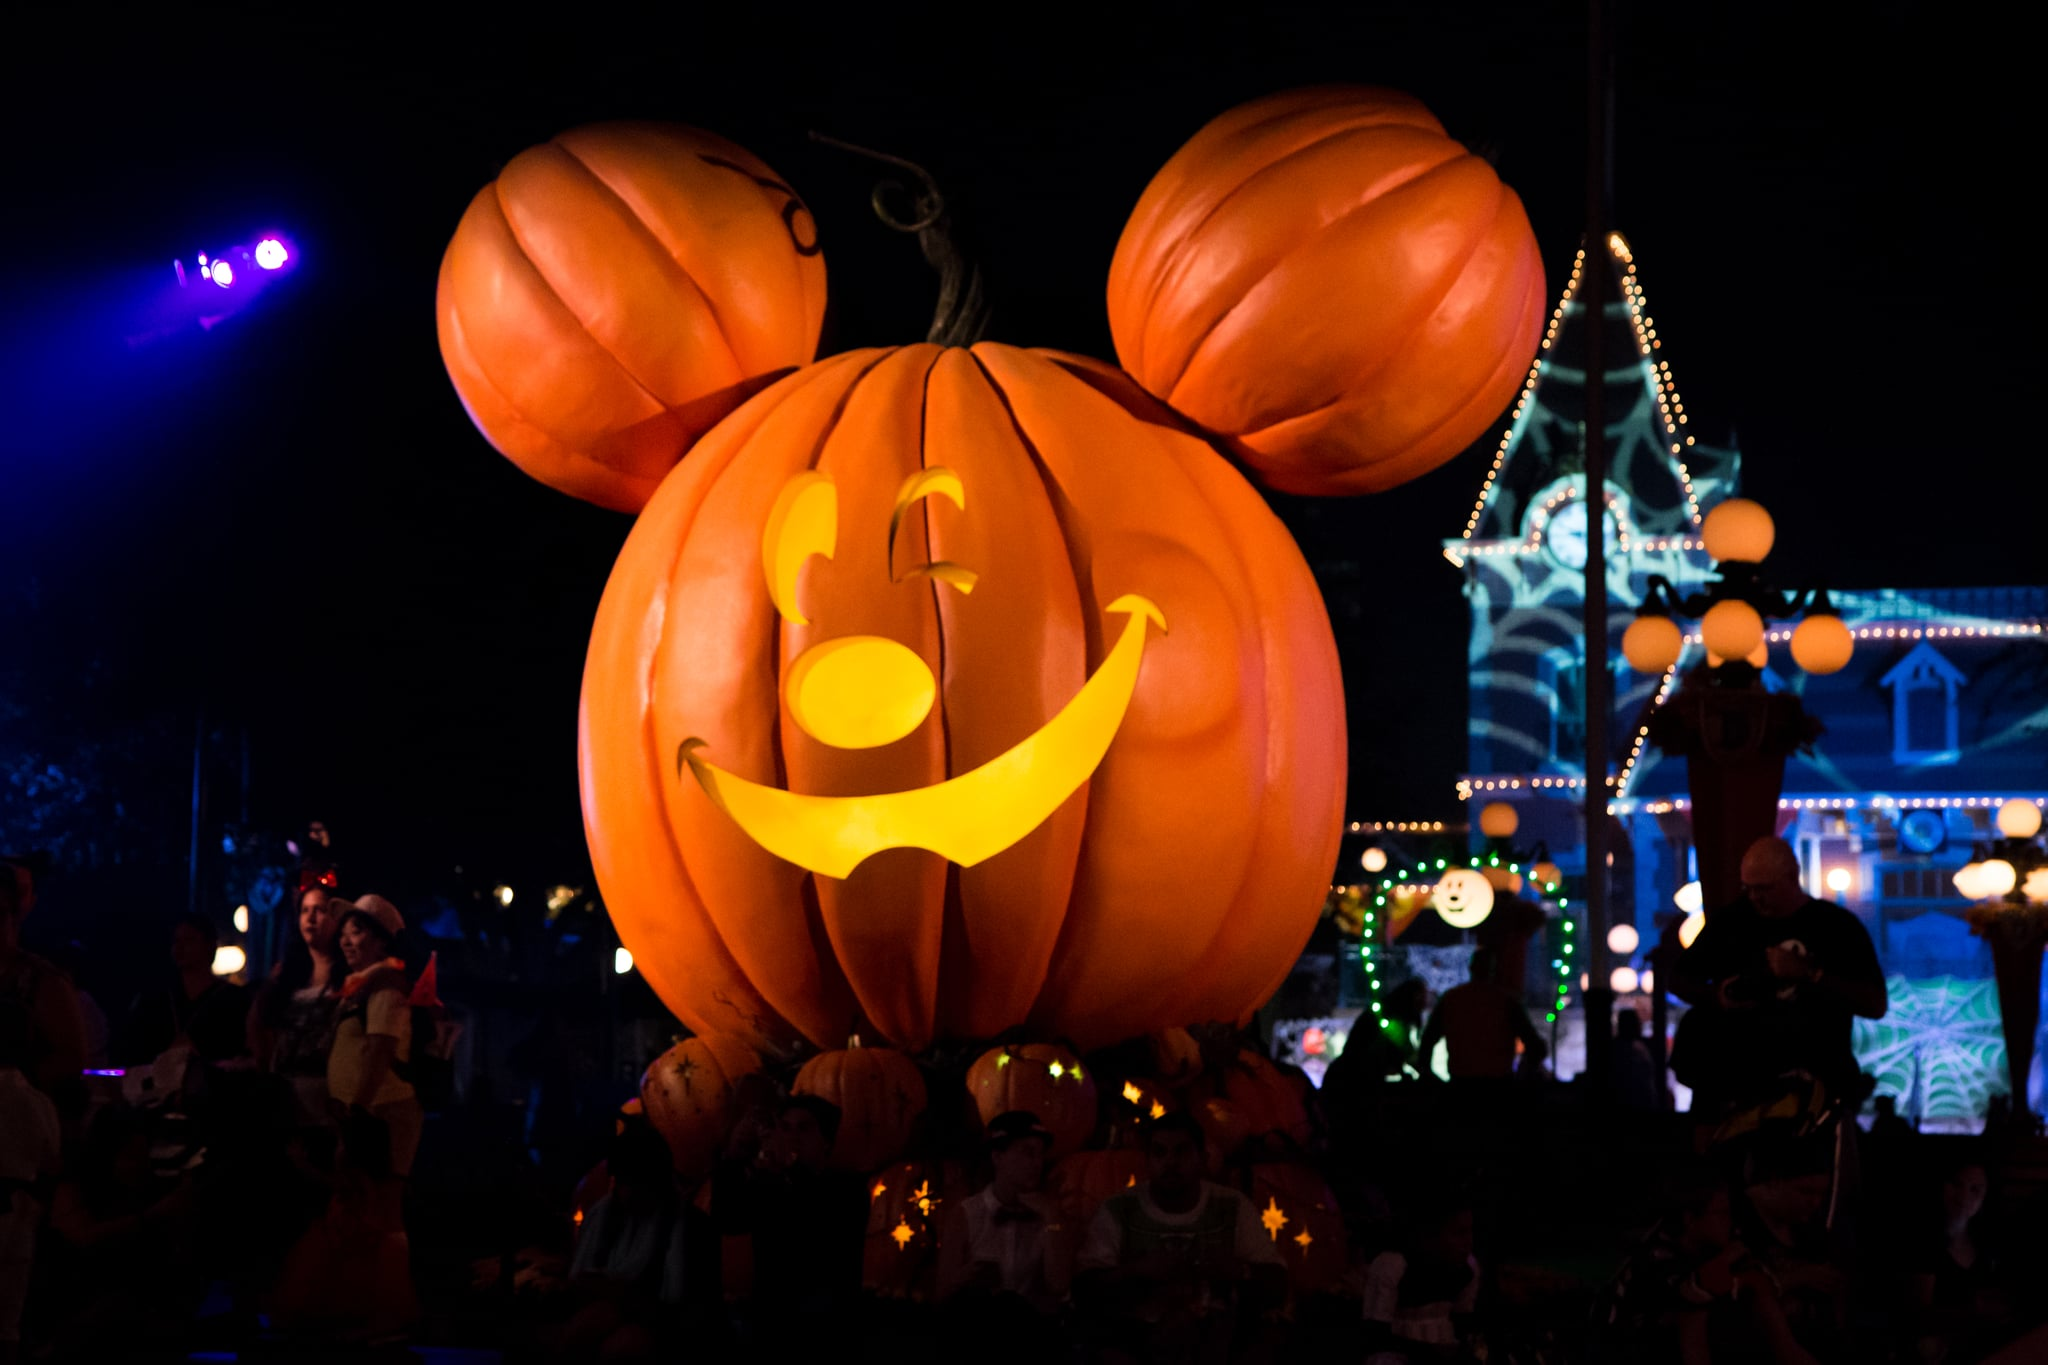 Mickey's Halloween Party Disneyland Dates 2017 | POPSUGAR Smart Living